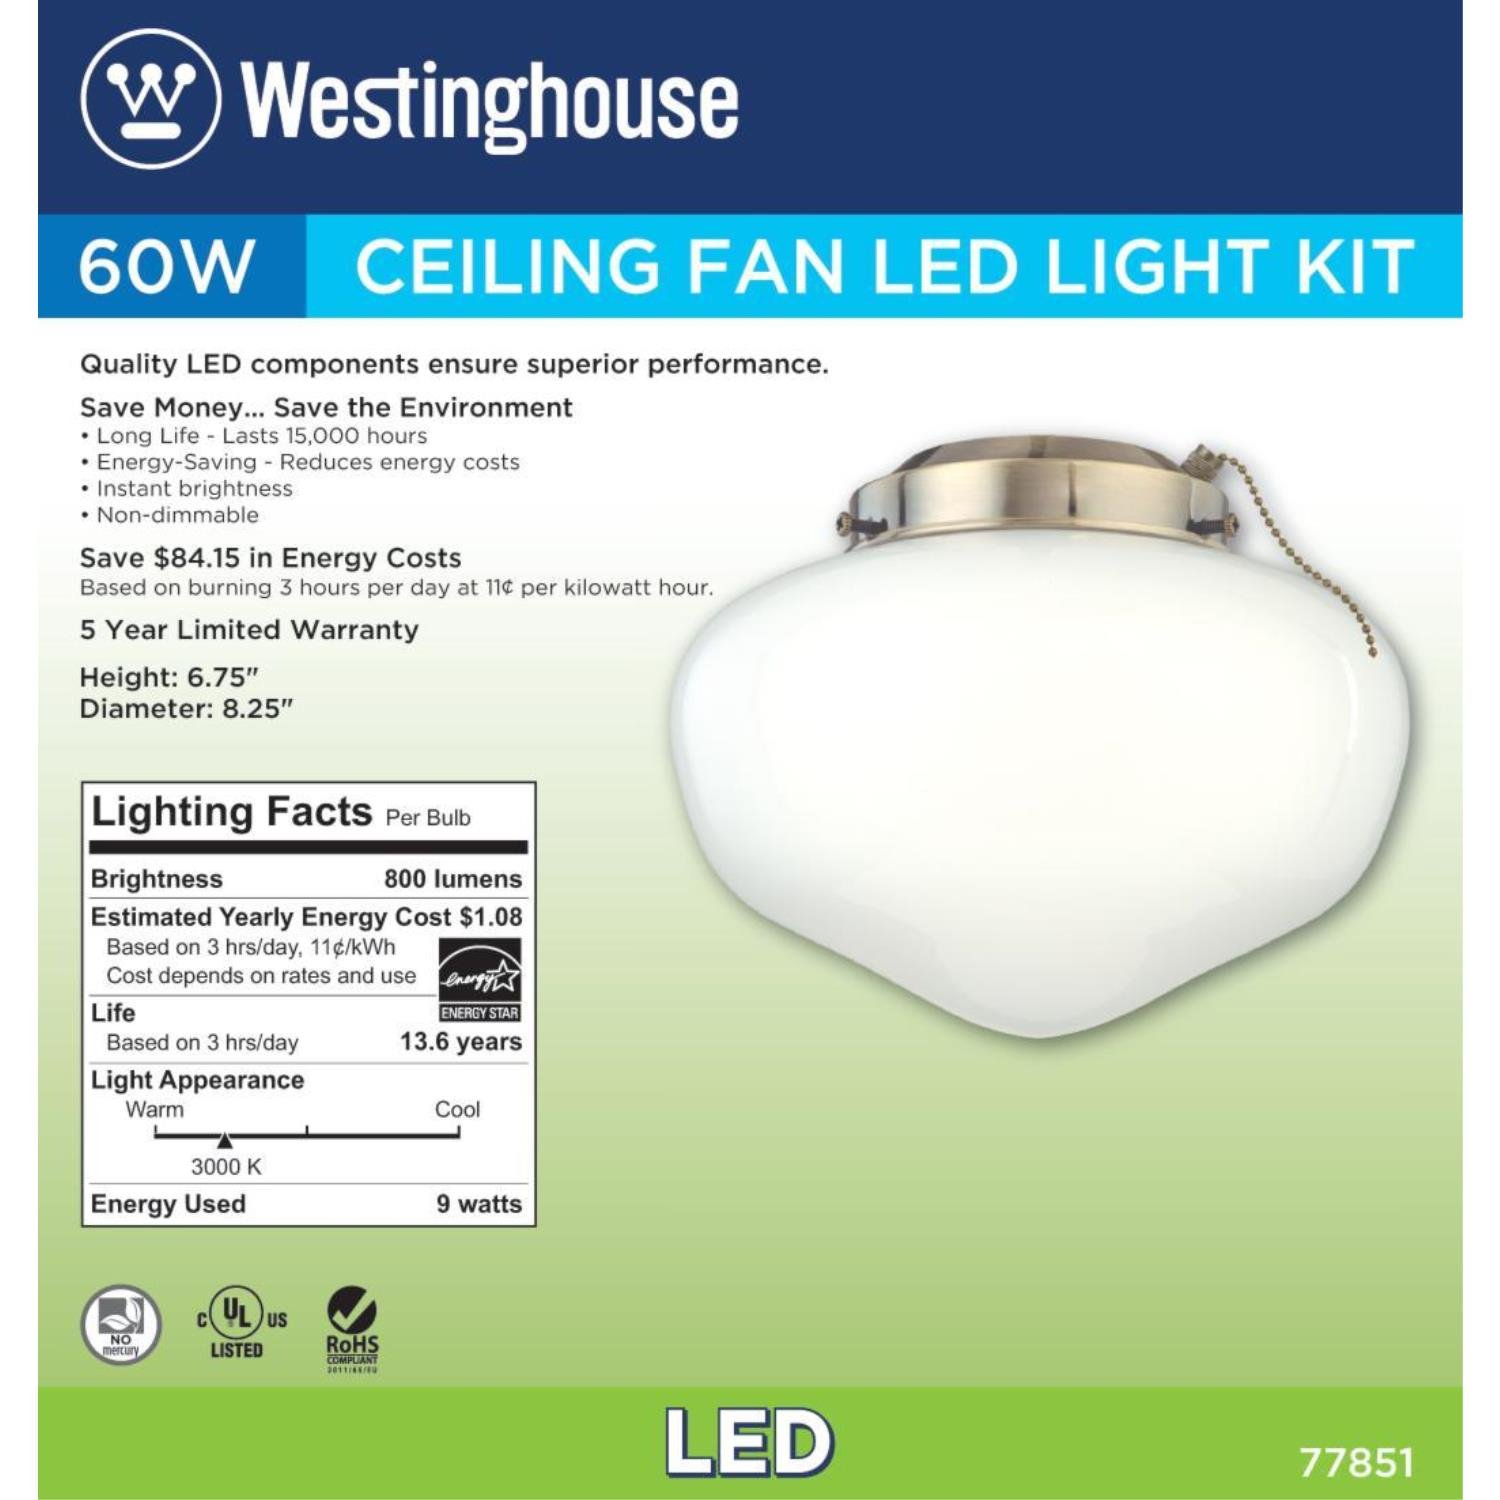 Westinghouse Lighting 7785100 LED Schoolhouse Indoor/Outdoor Energy Star Ceiling Fan Light Kit, Antique Brass Finish with White Opal Glass by Westinghouse Lighting (Image #4)